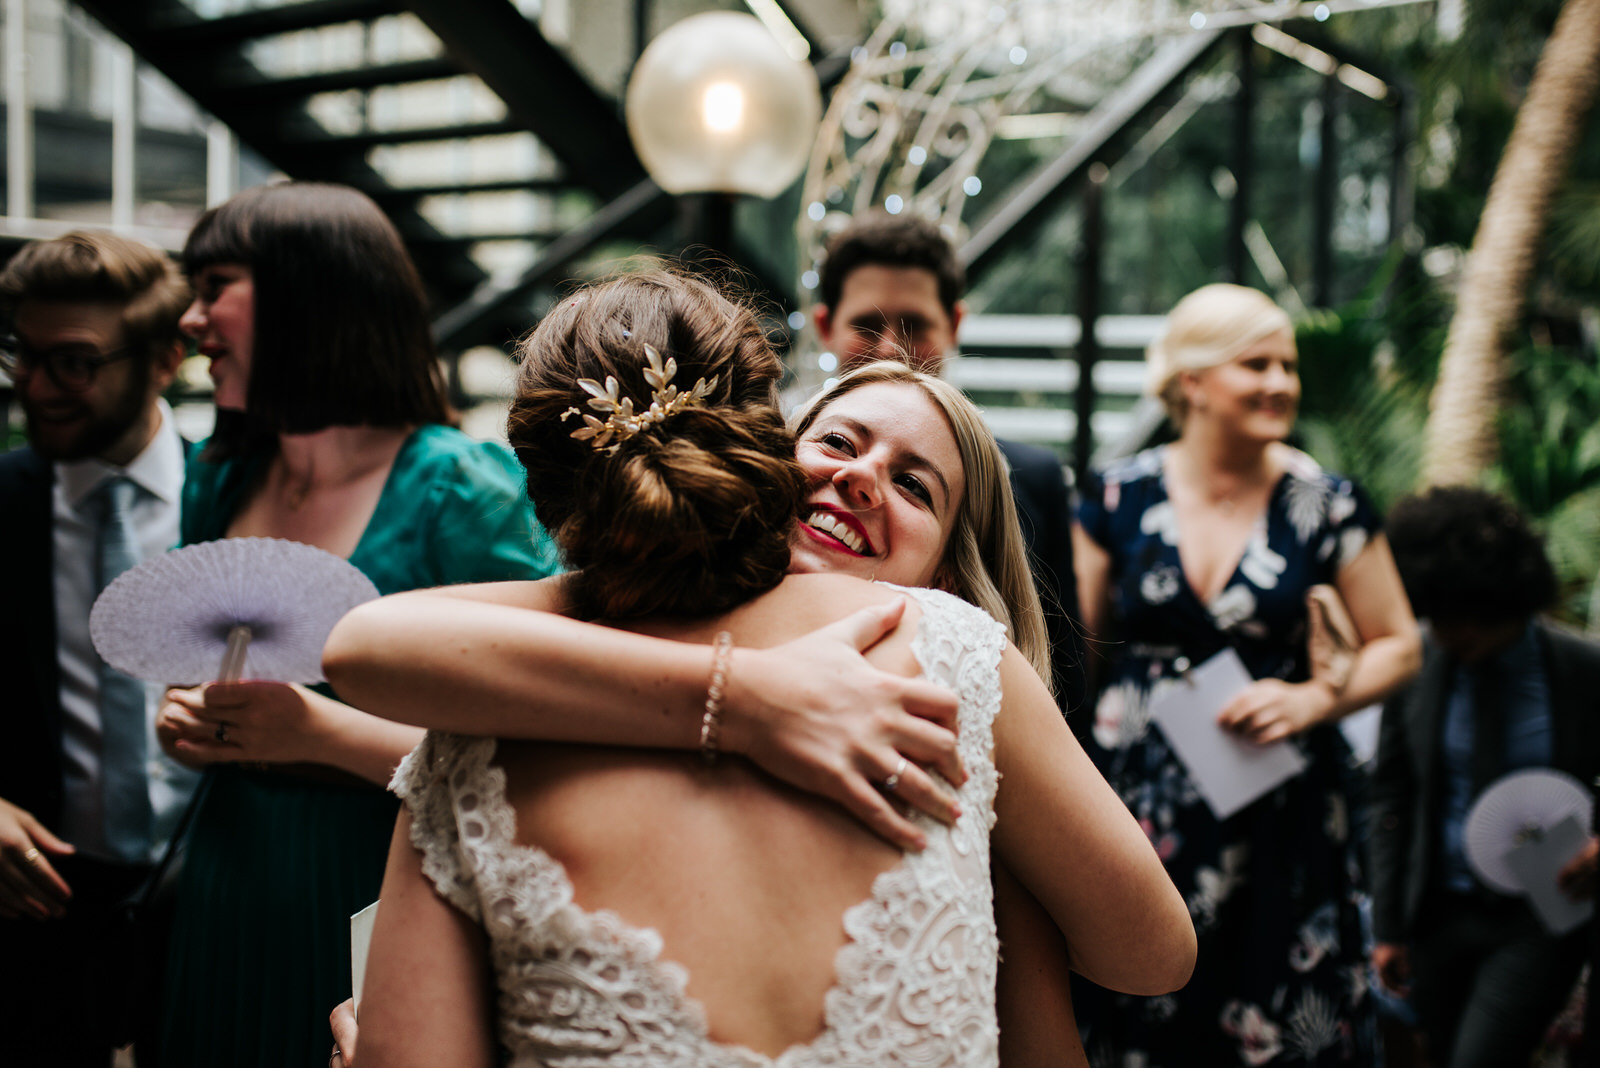 Bride and close friend hug each other and smile after wedding ce